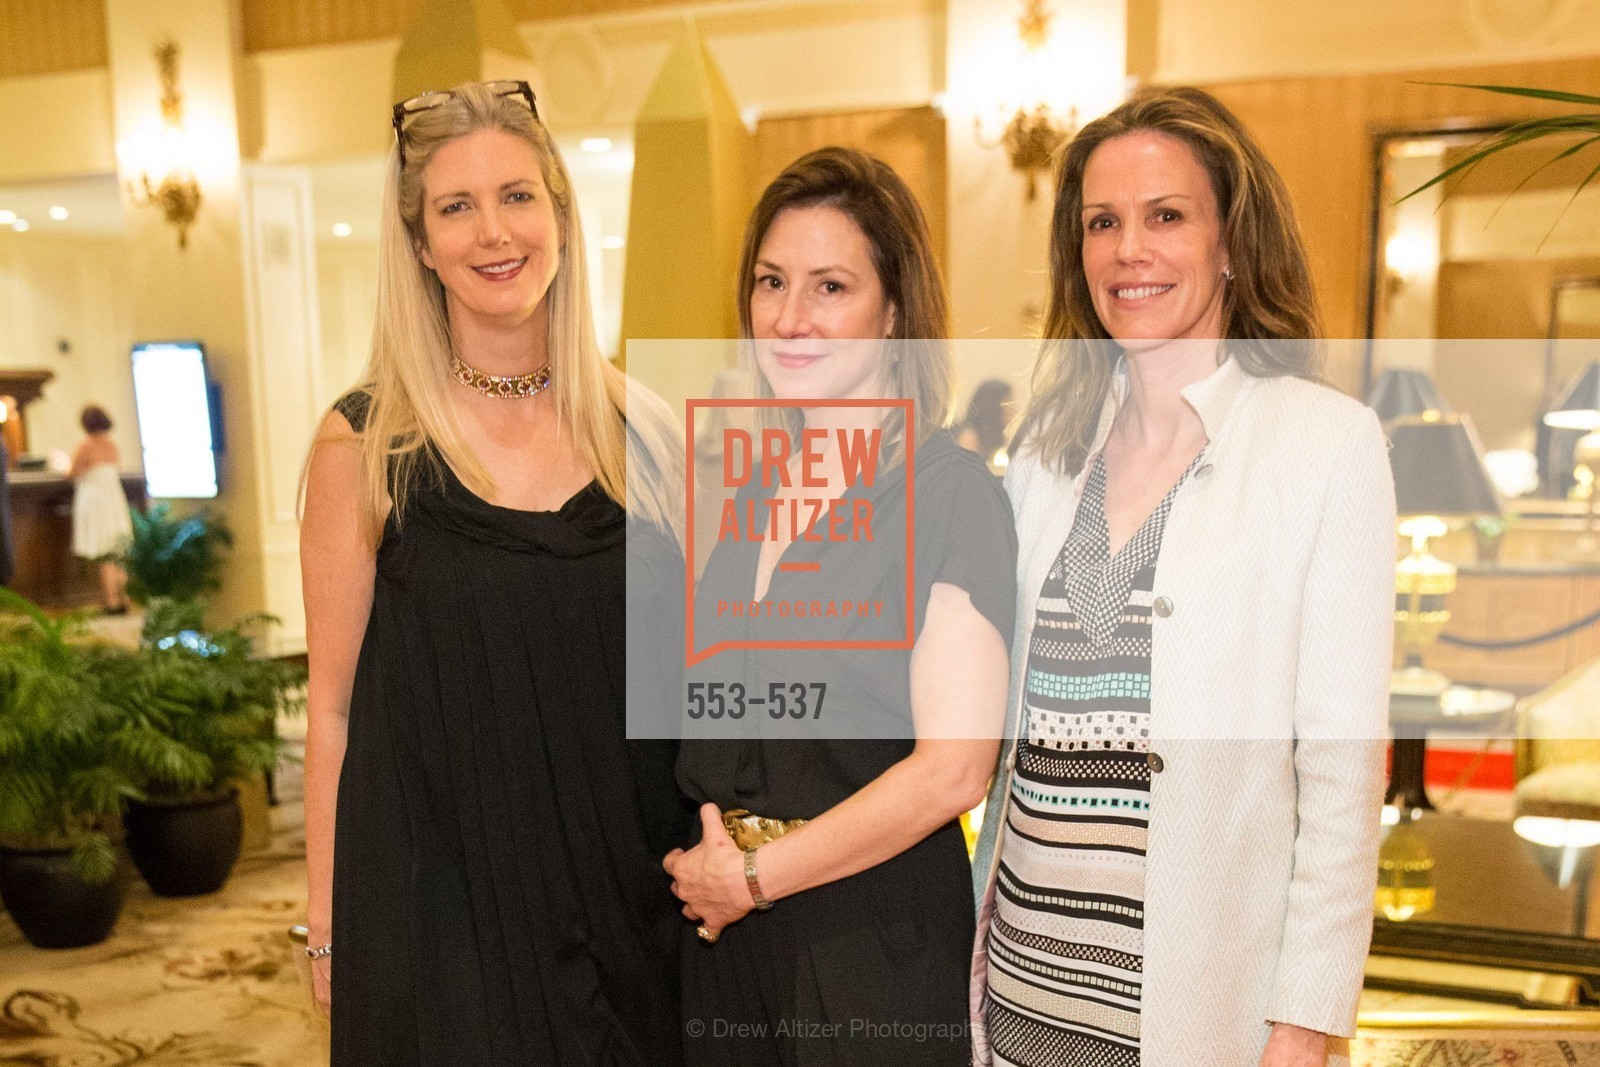 Pasha Thornton, Sarah Jane Gould, Leslie Thieriot, TOP OF THE MARK'S 75TH Anniversary Party, US, November 6th, 2014,Drew Altizer, Drew Altizer Photography, full-service agency, private events, San Francisco photographer, photographer california